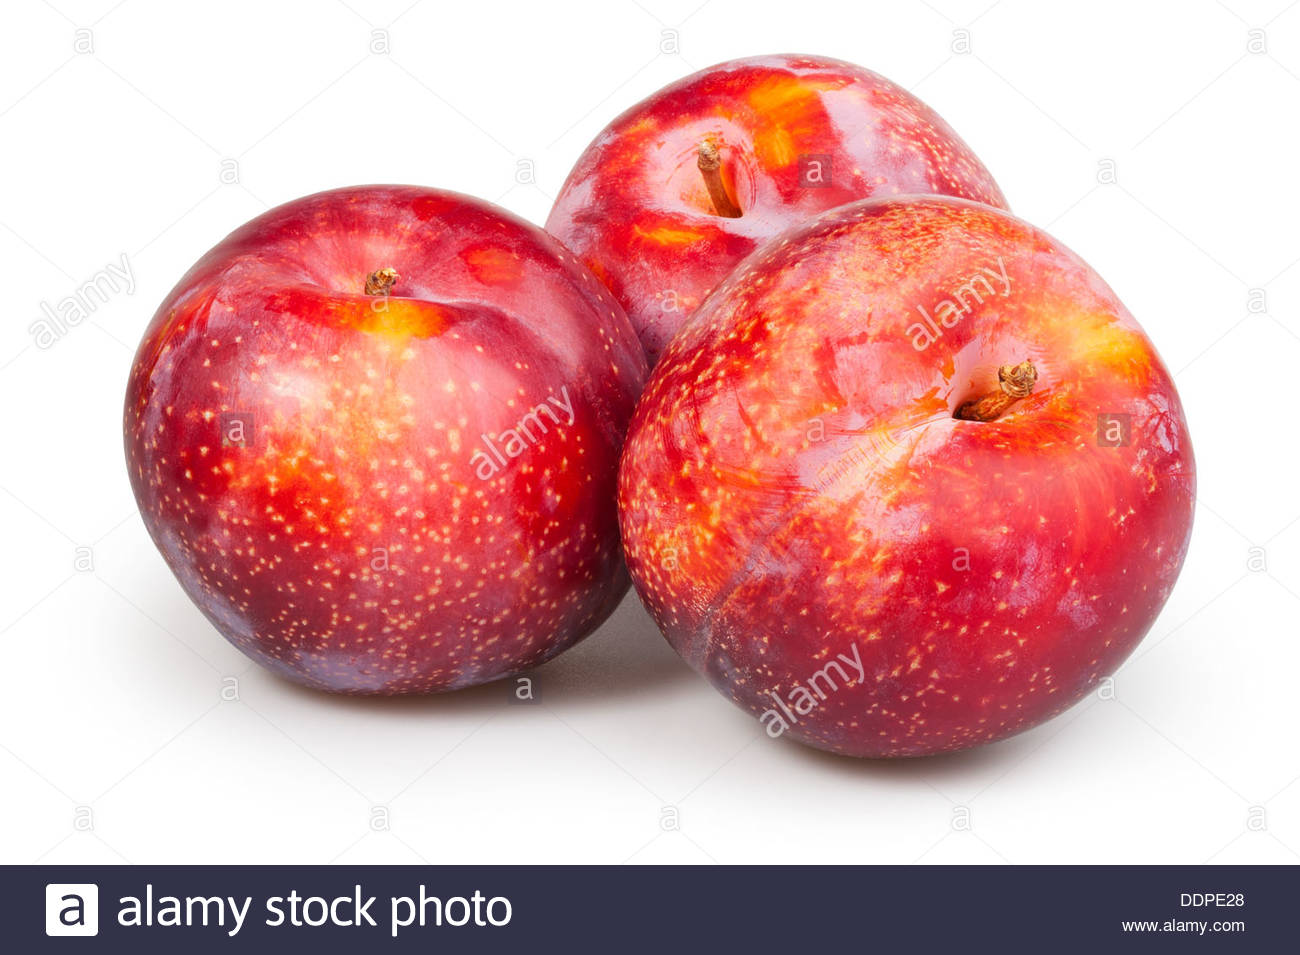 plum red group on white background Stock Photo 60115616   Alamy 1300x955